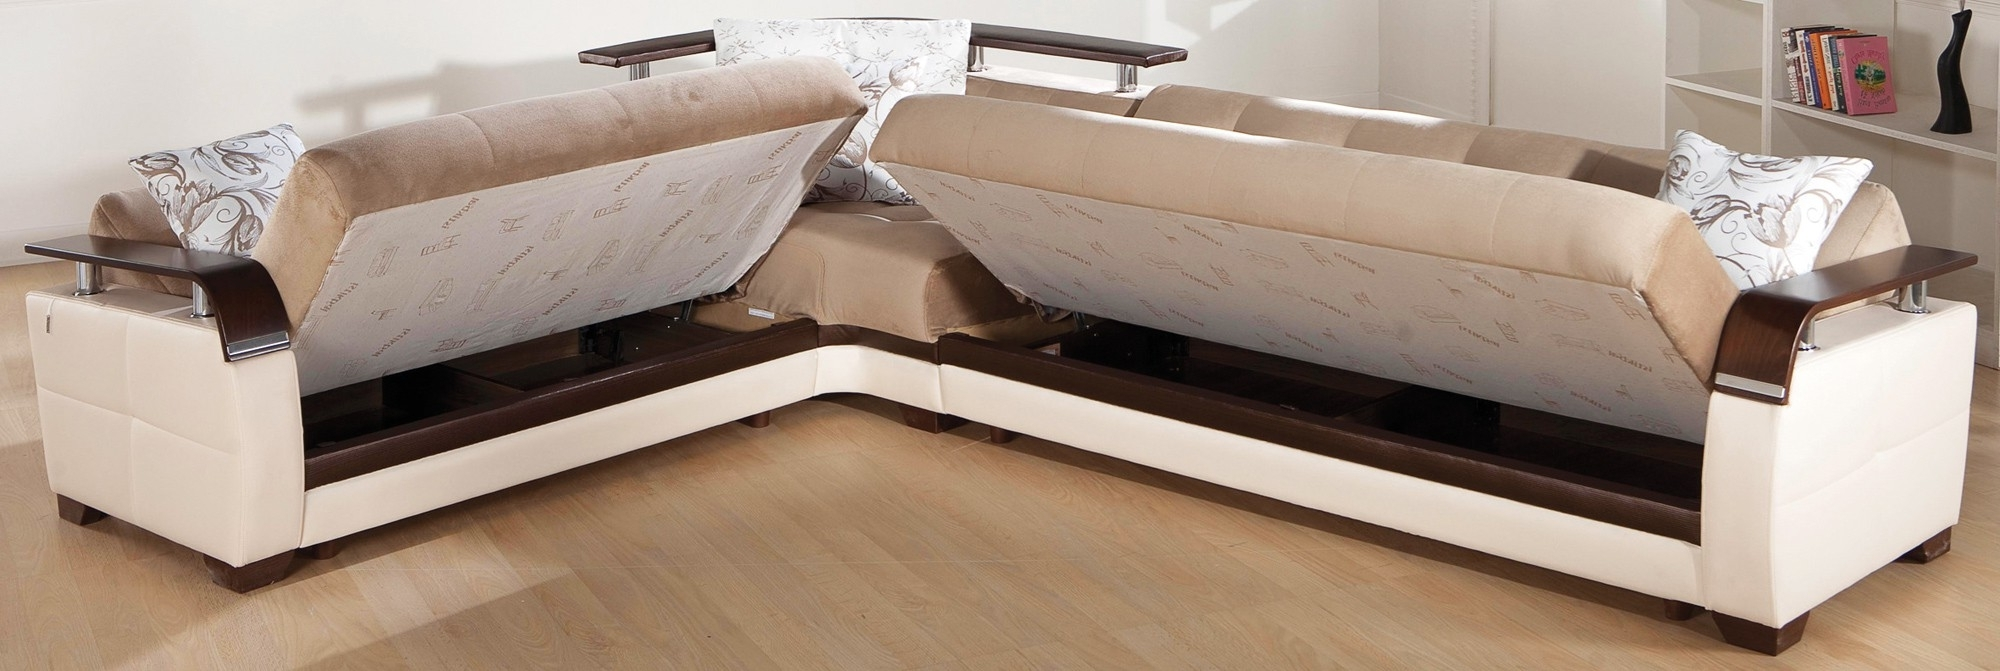 Sofa Sleeper Sectionals – Interior Design For Recent Sectional Sofas With Sleeper (View 3 of 15)